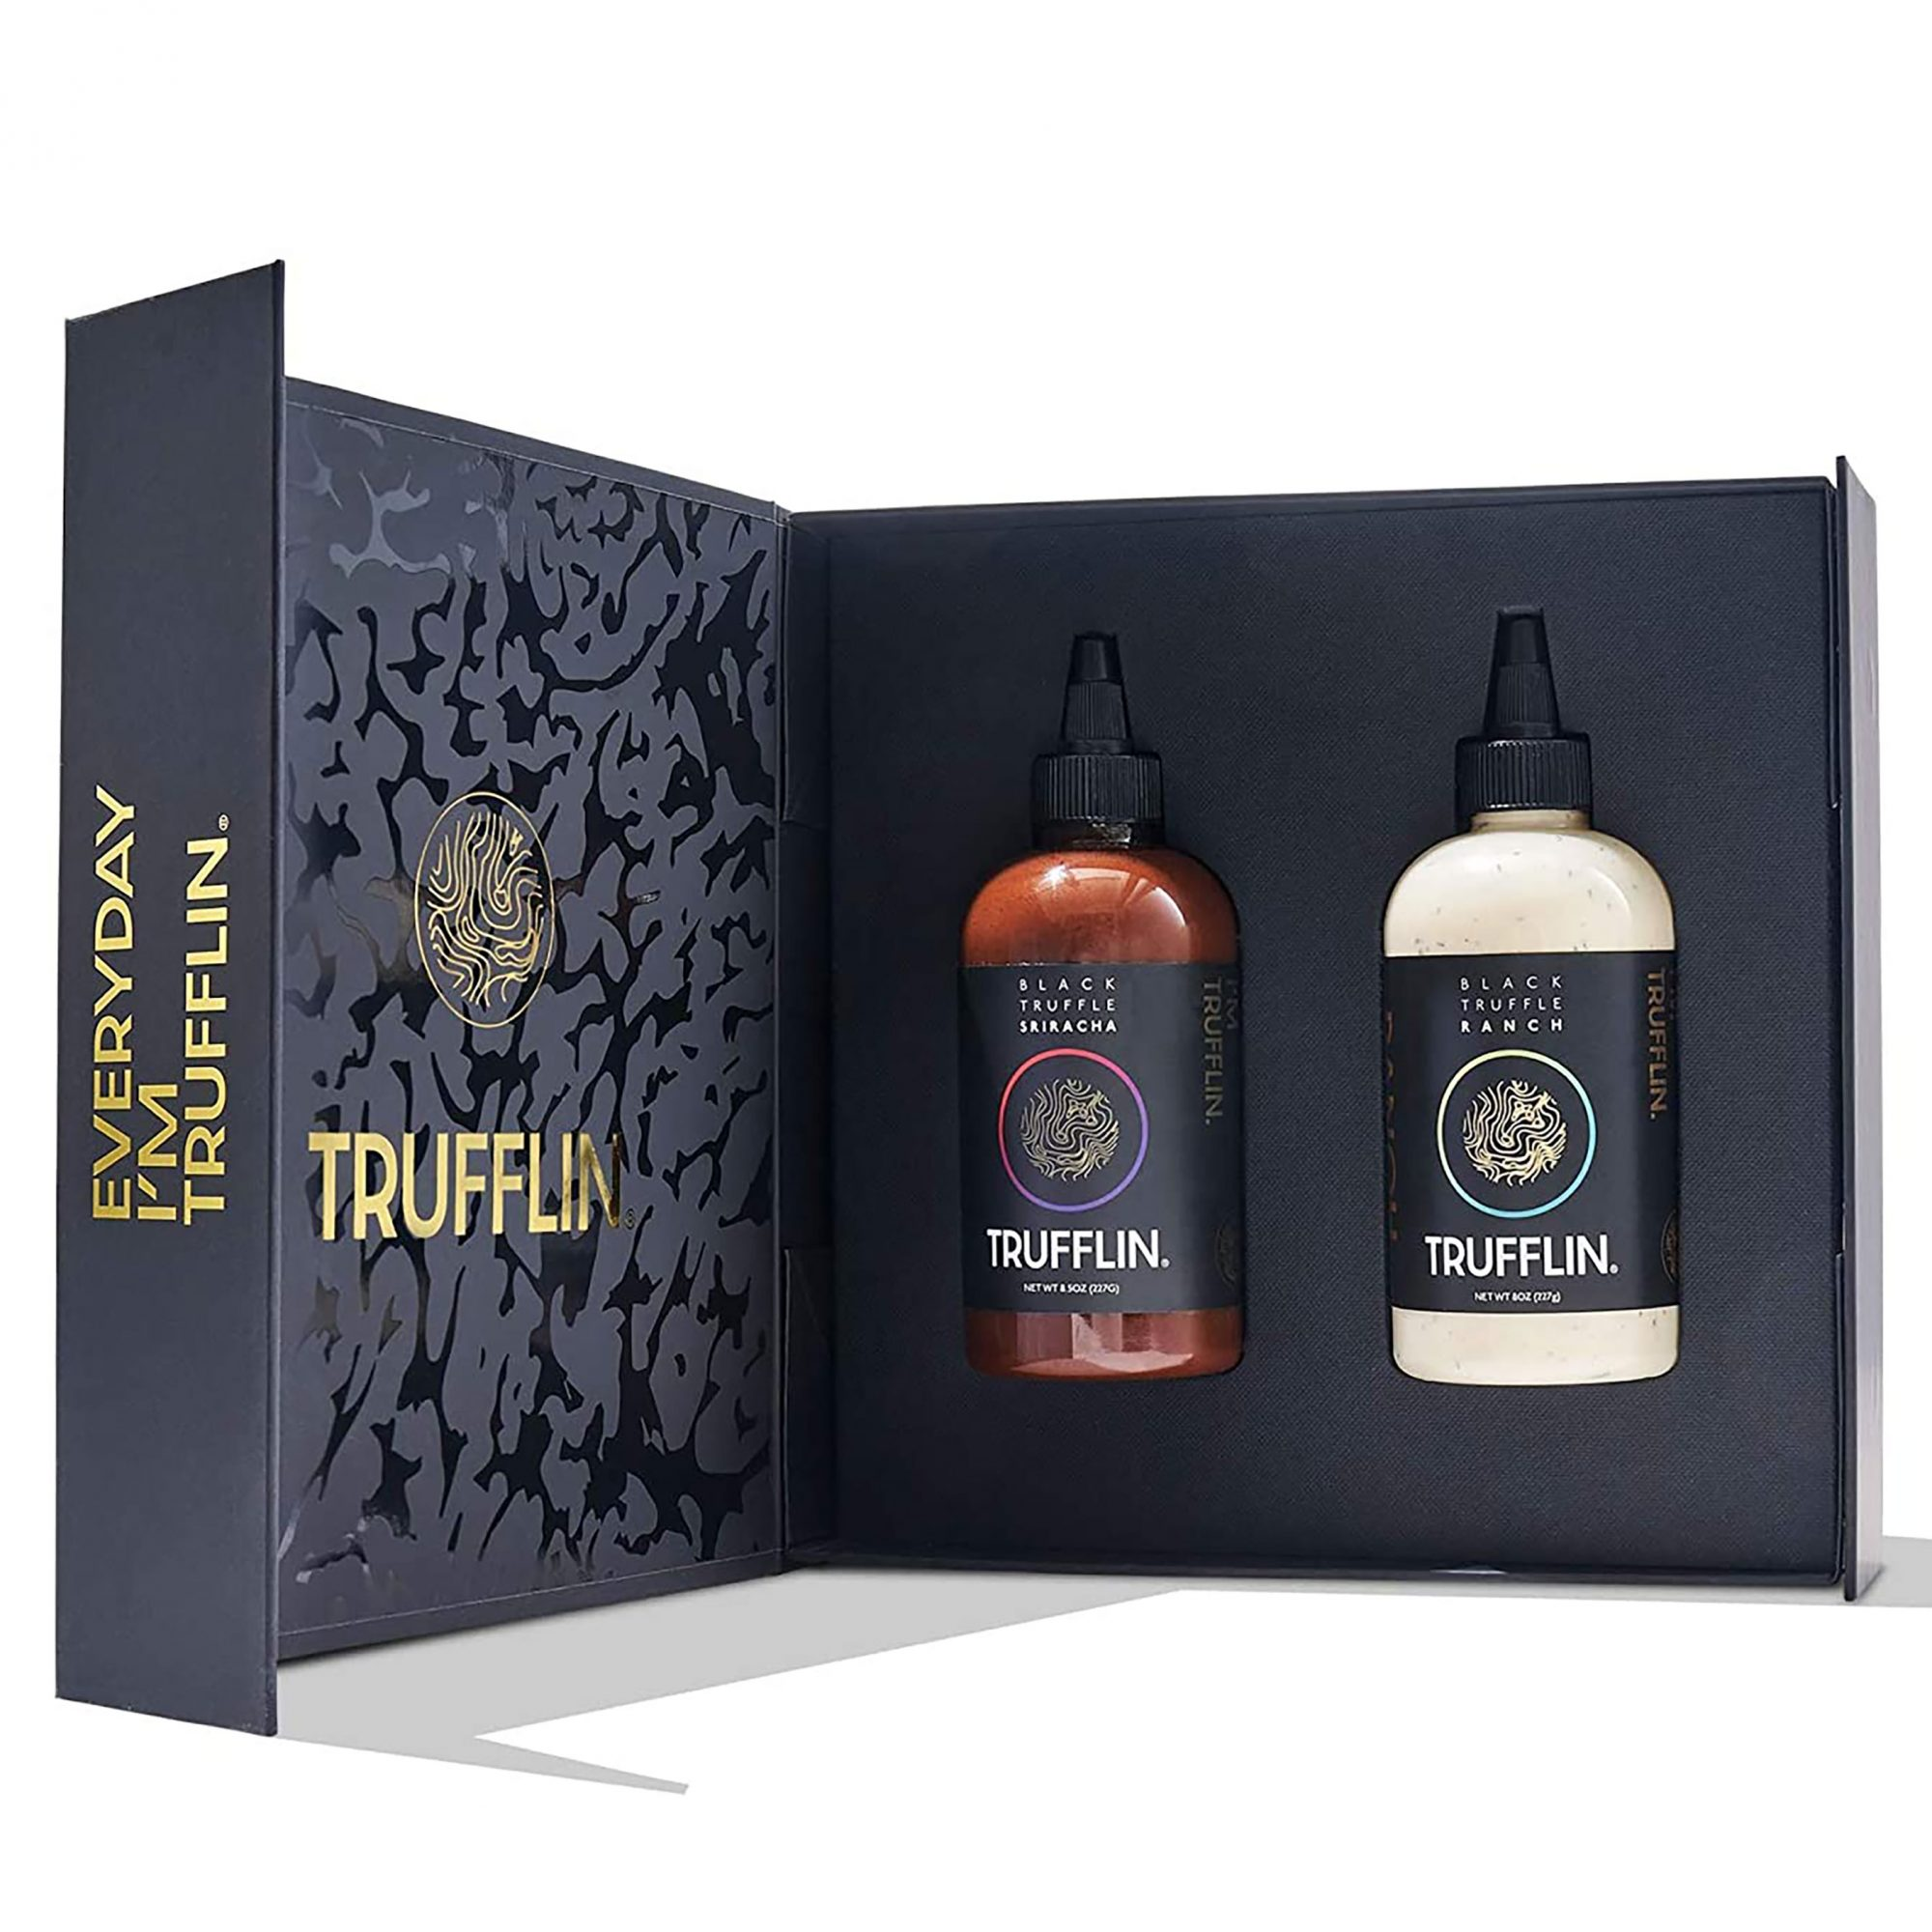 Set of two trufflin sauces in black box